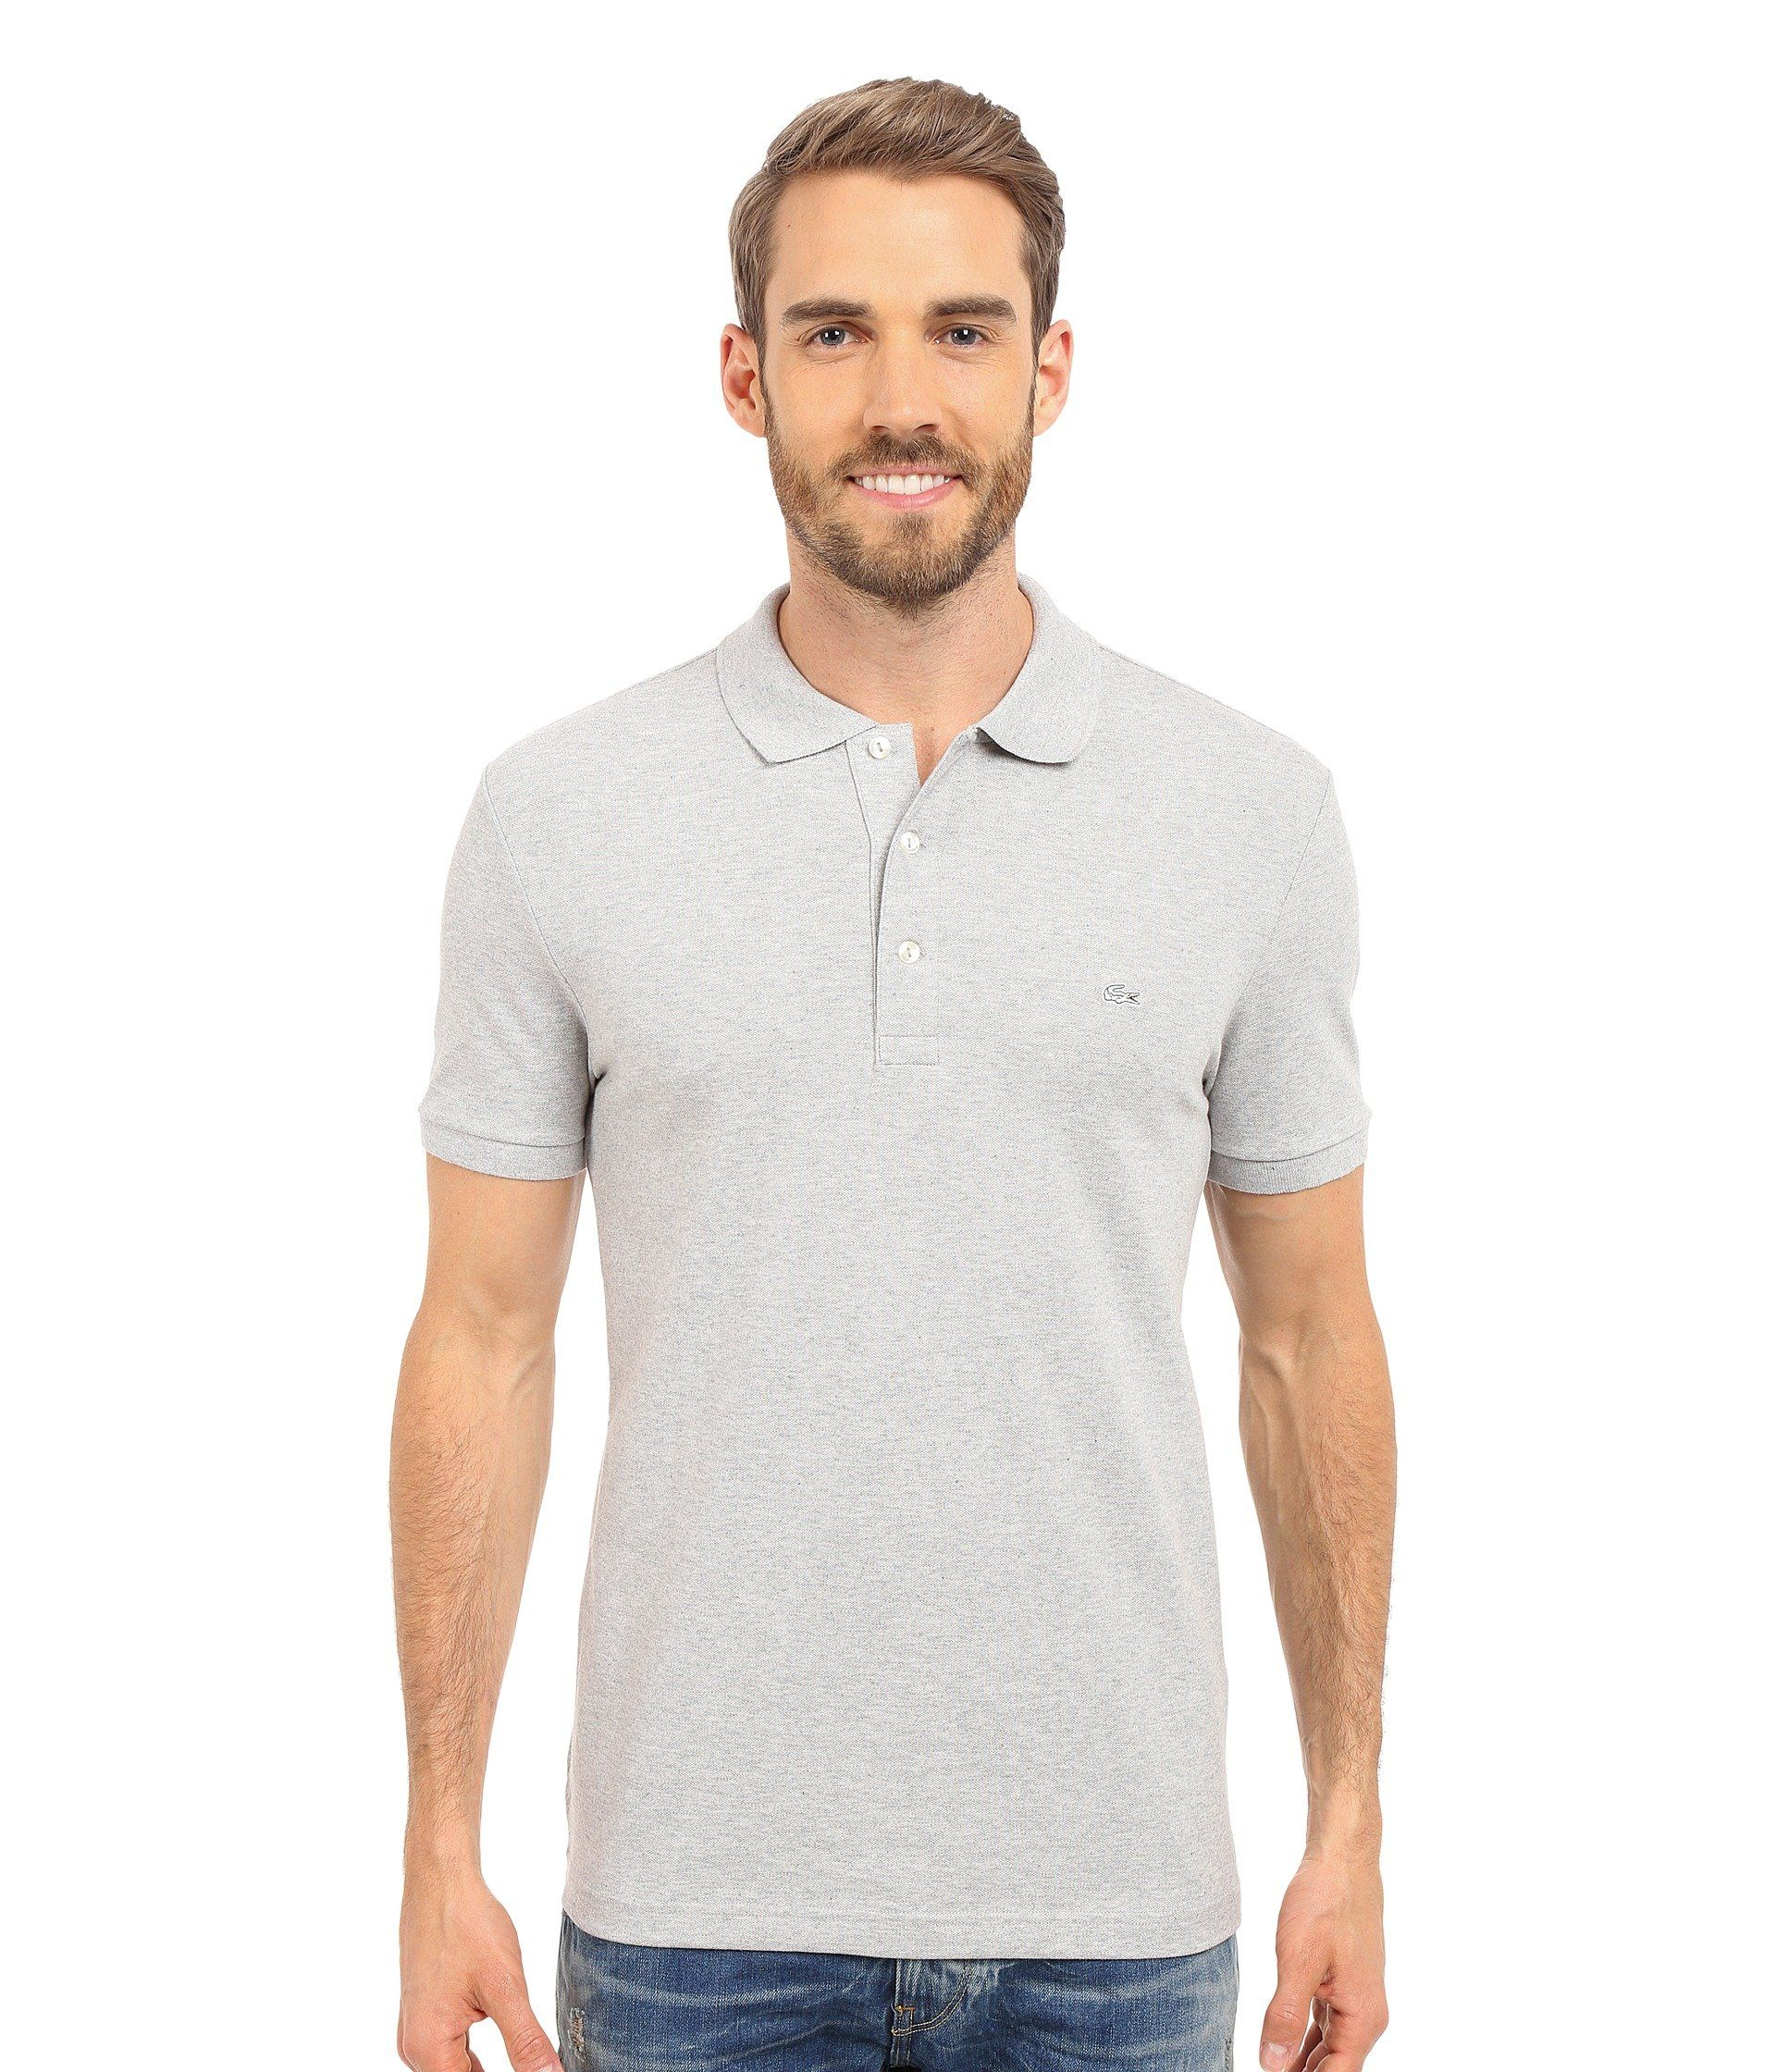 c545aa9fa LACOSTE Stretch Petit Piqué Slim Fit Polo.  lacoste  cloth ...